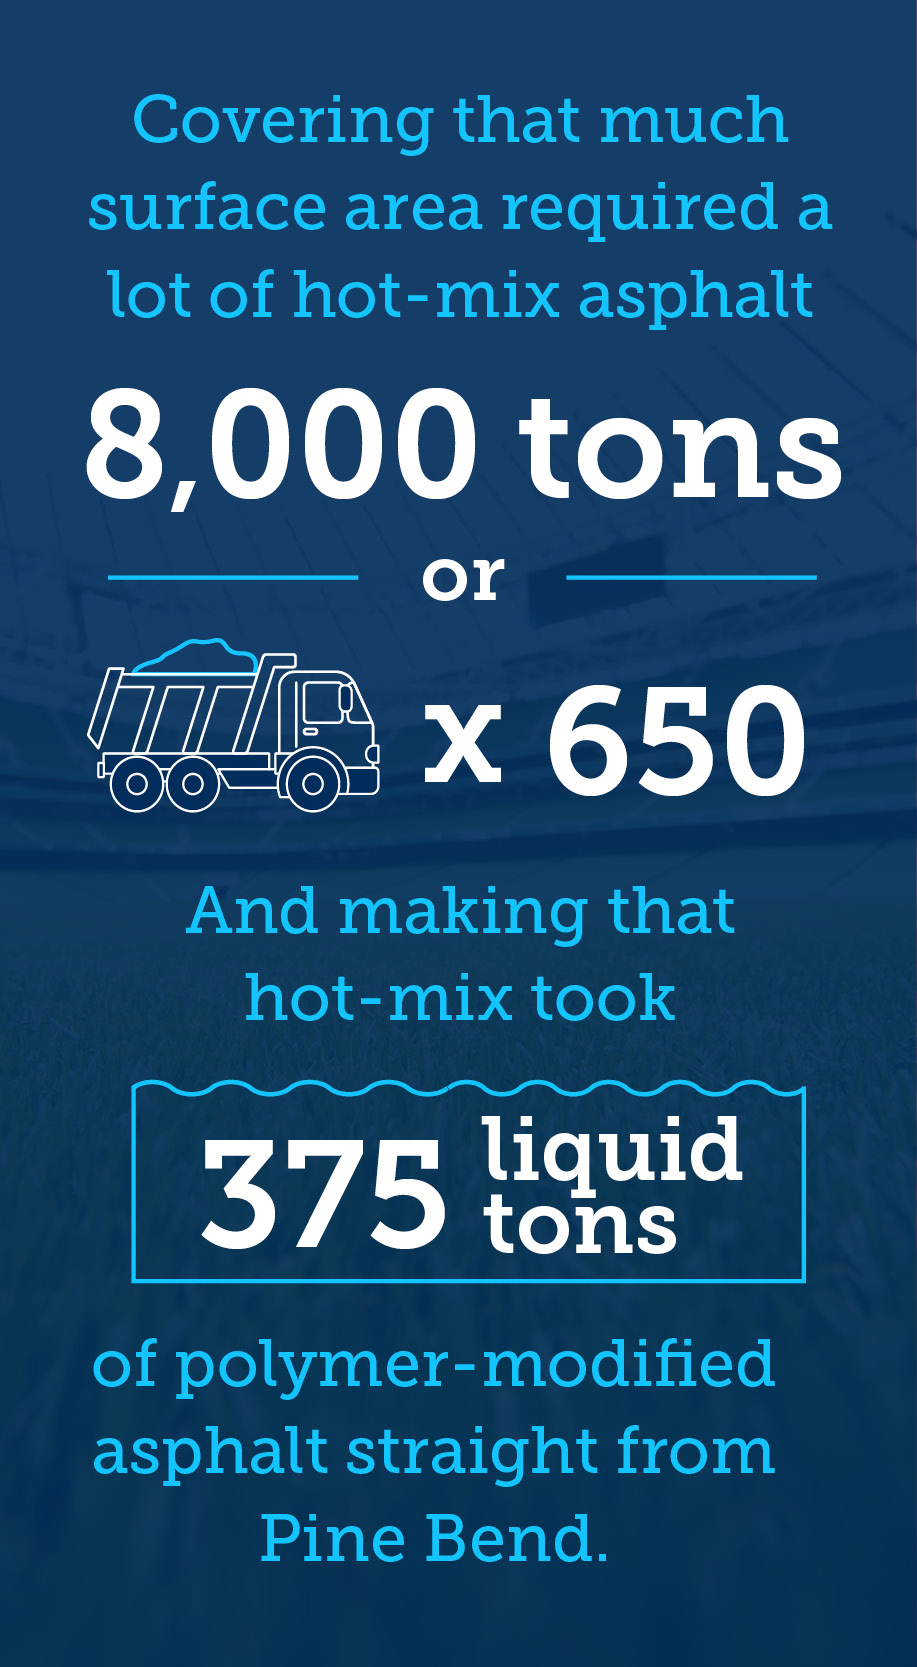 Covering that much surface area required a lot of hot-mix asphalt – about 8,000 tons in fact, or about 650 filled dump trucks. And making that hot-mix took roughly 375 liquid tons of polymer-modified